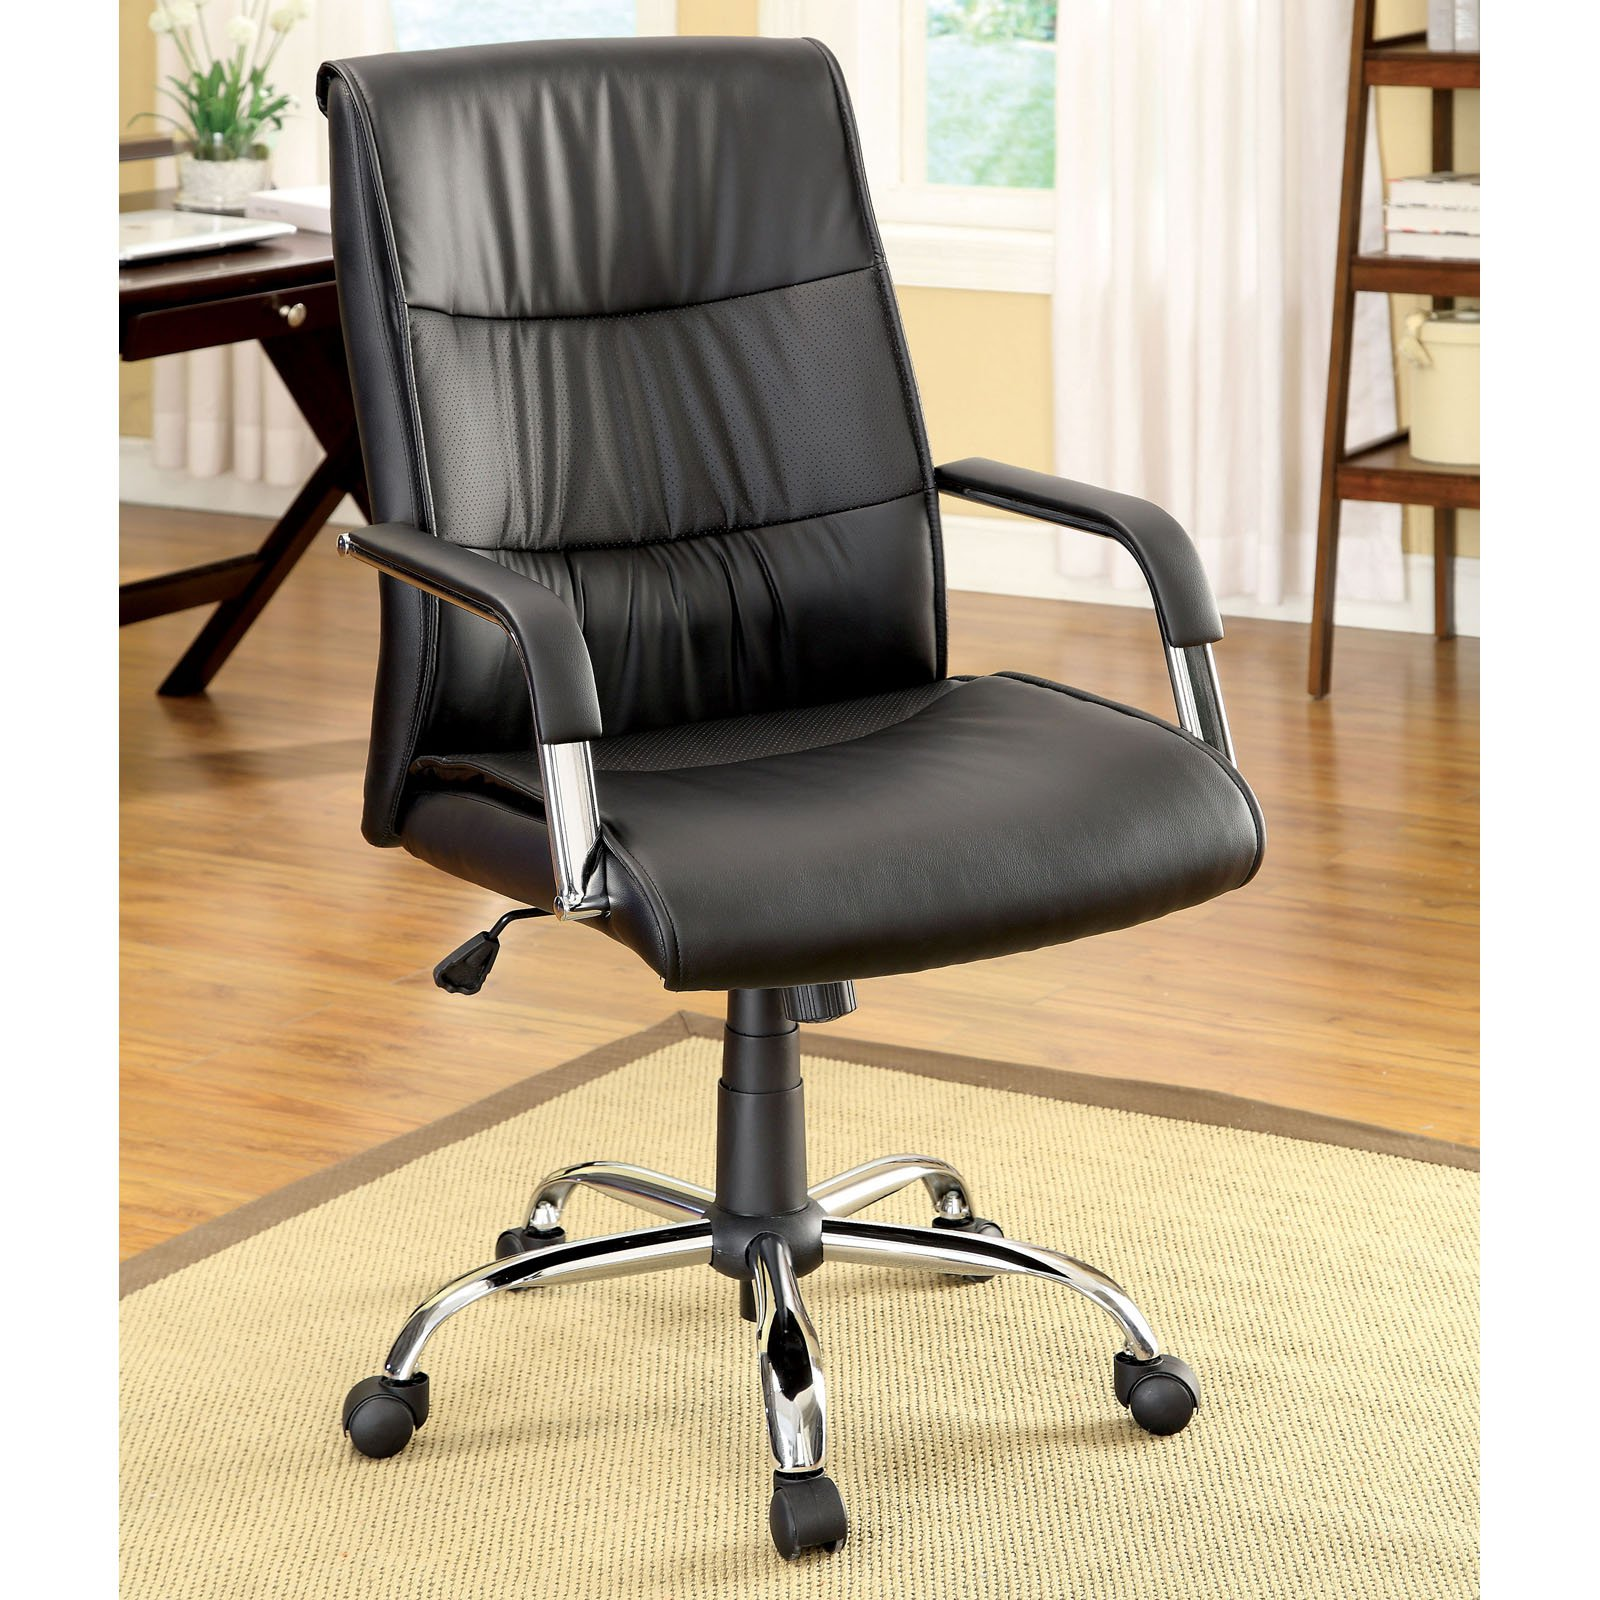 Furniture of America Ellis Padded Leatherette Office Chair - Black